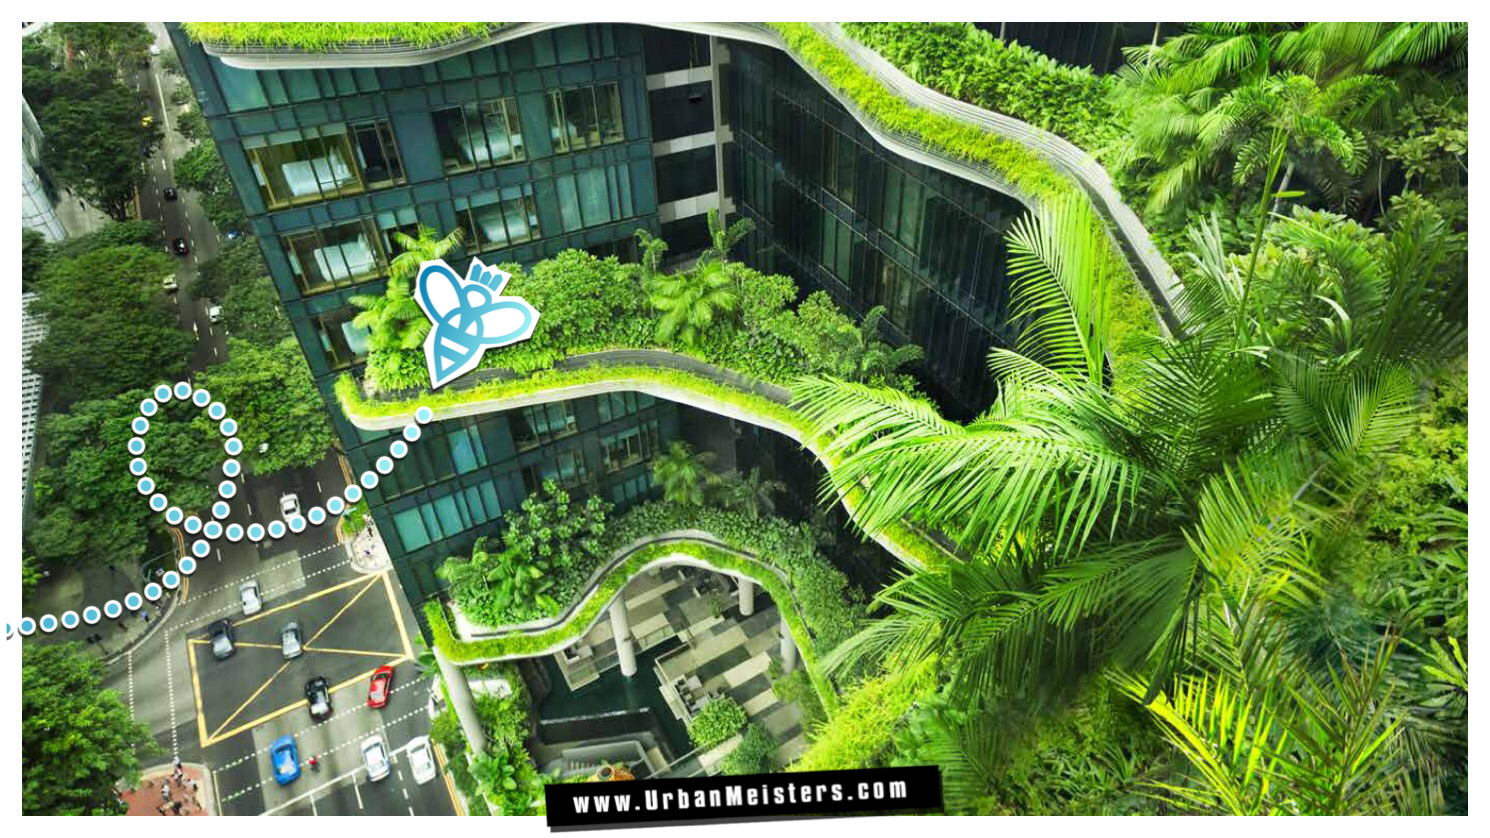 Sustainable Architecture WOHA Making A GREEN STYLISH Urban Future - Sustainable architecture design